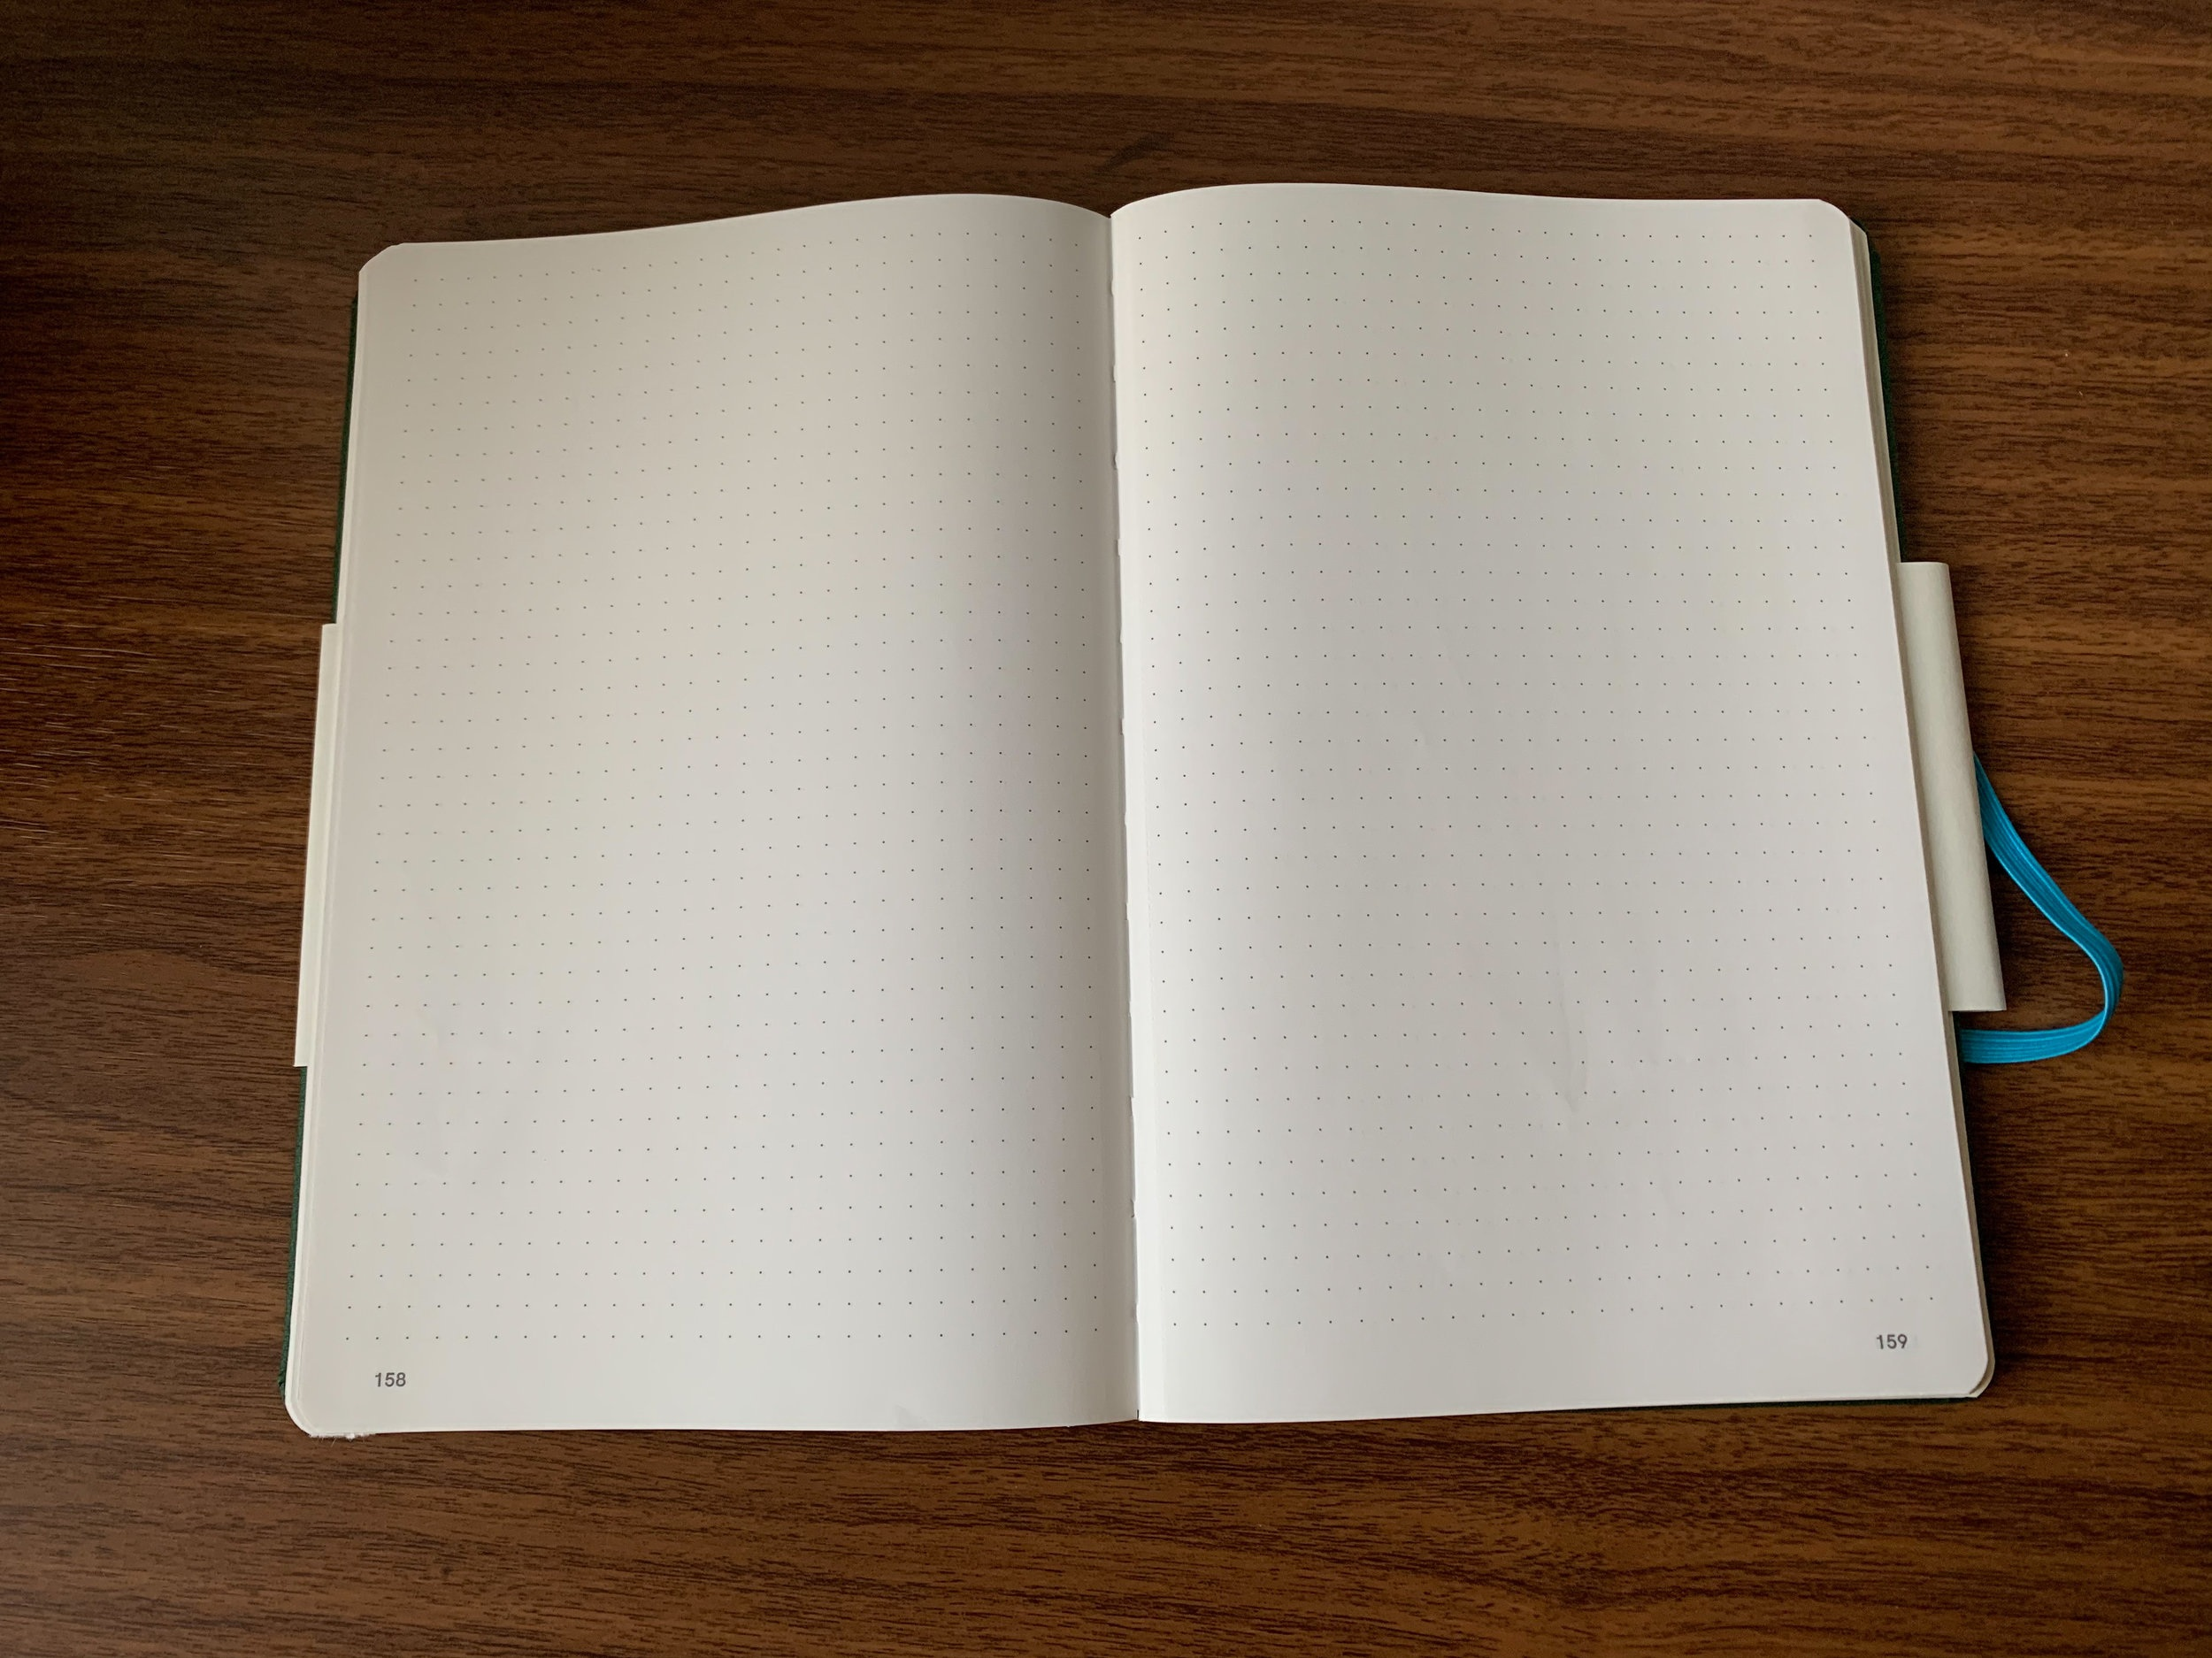 It's relatively uncommon to find a smaller bound notebook that lays completely flat without breaking the spine or holding it open, much less one with 187 pages (16 of which are perforated).